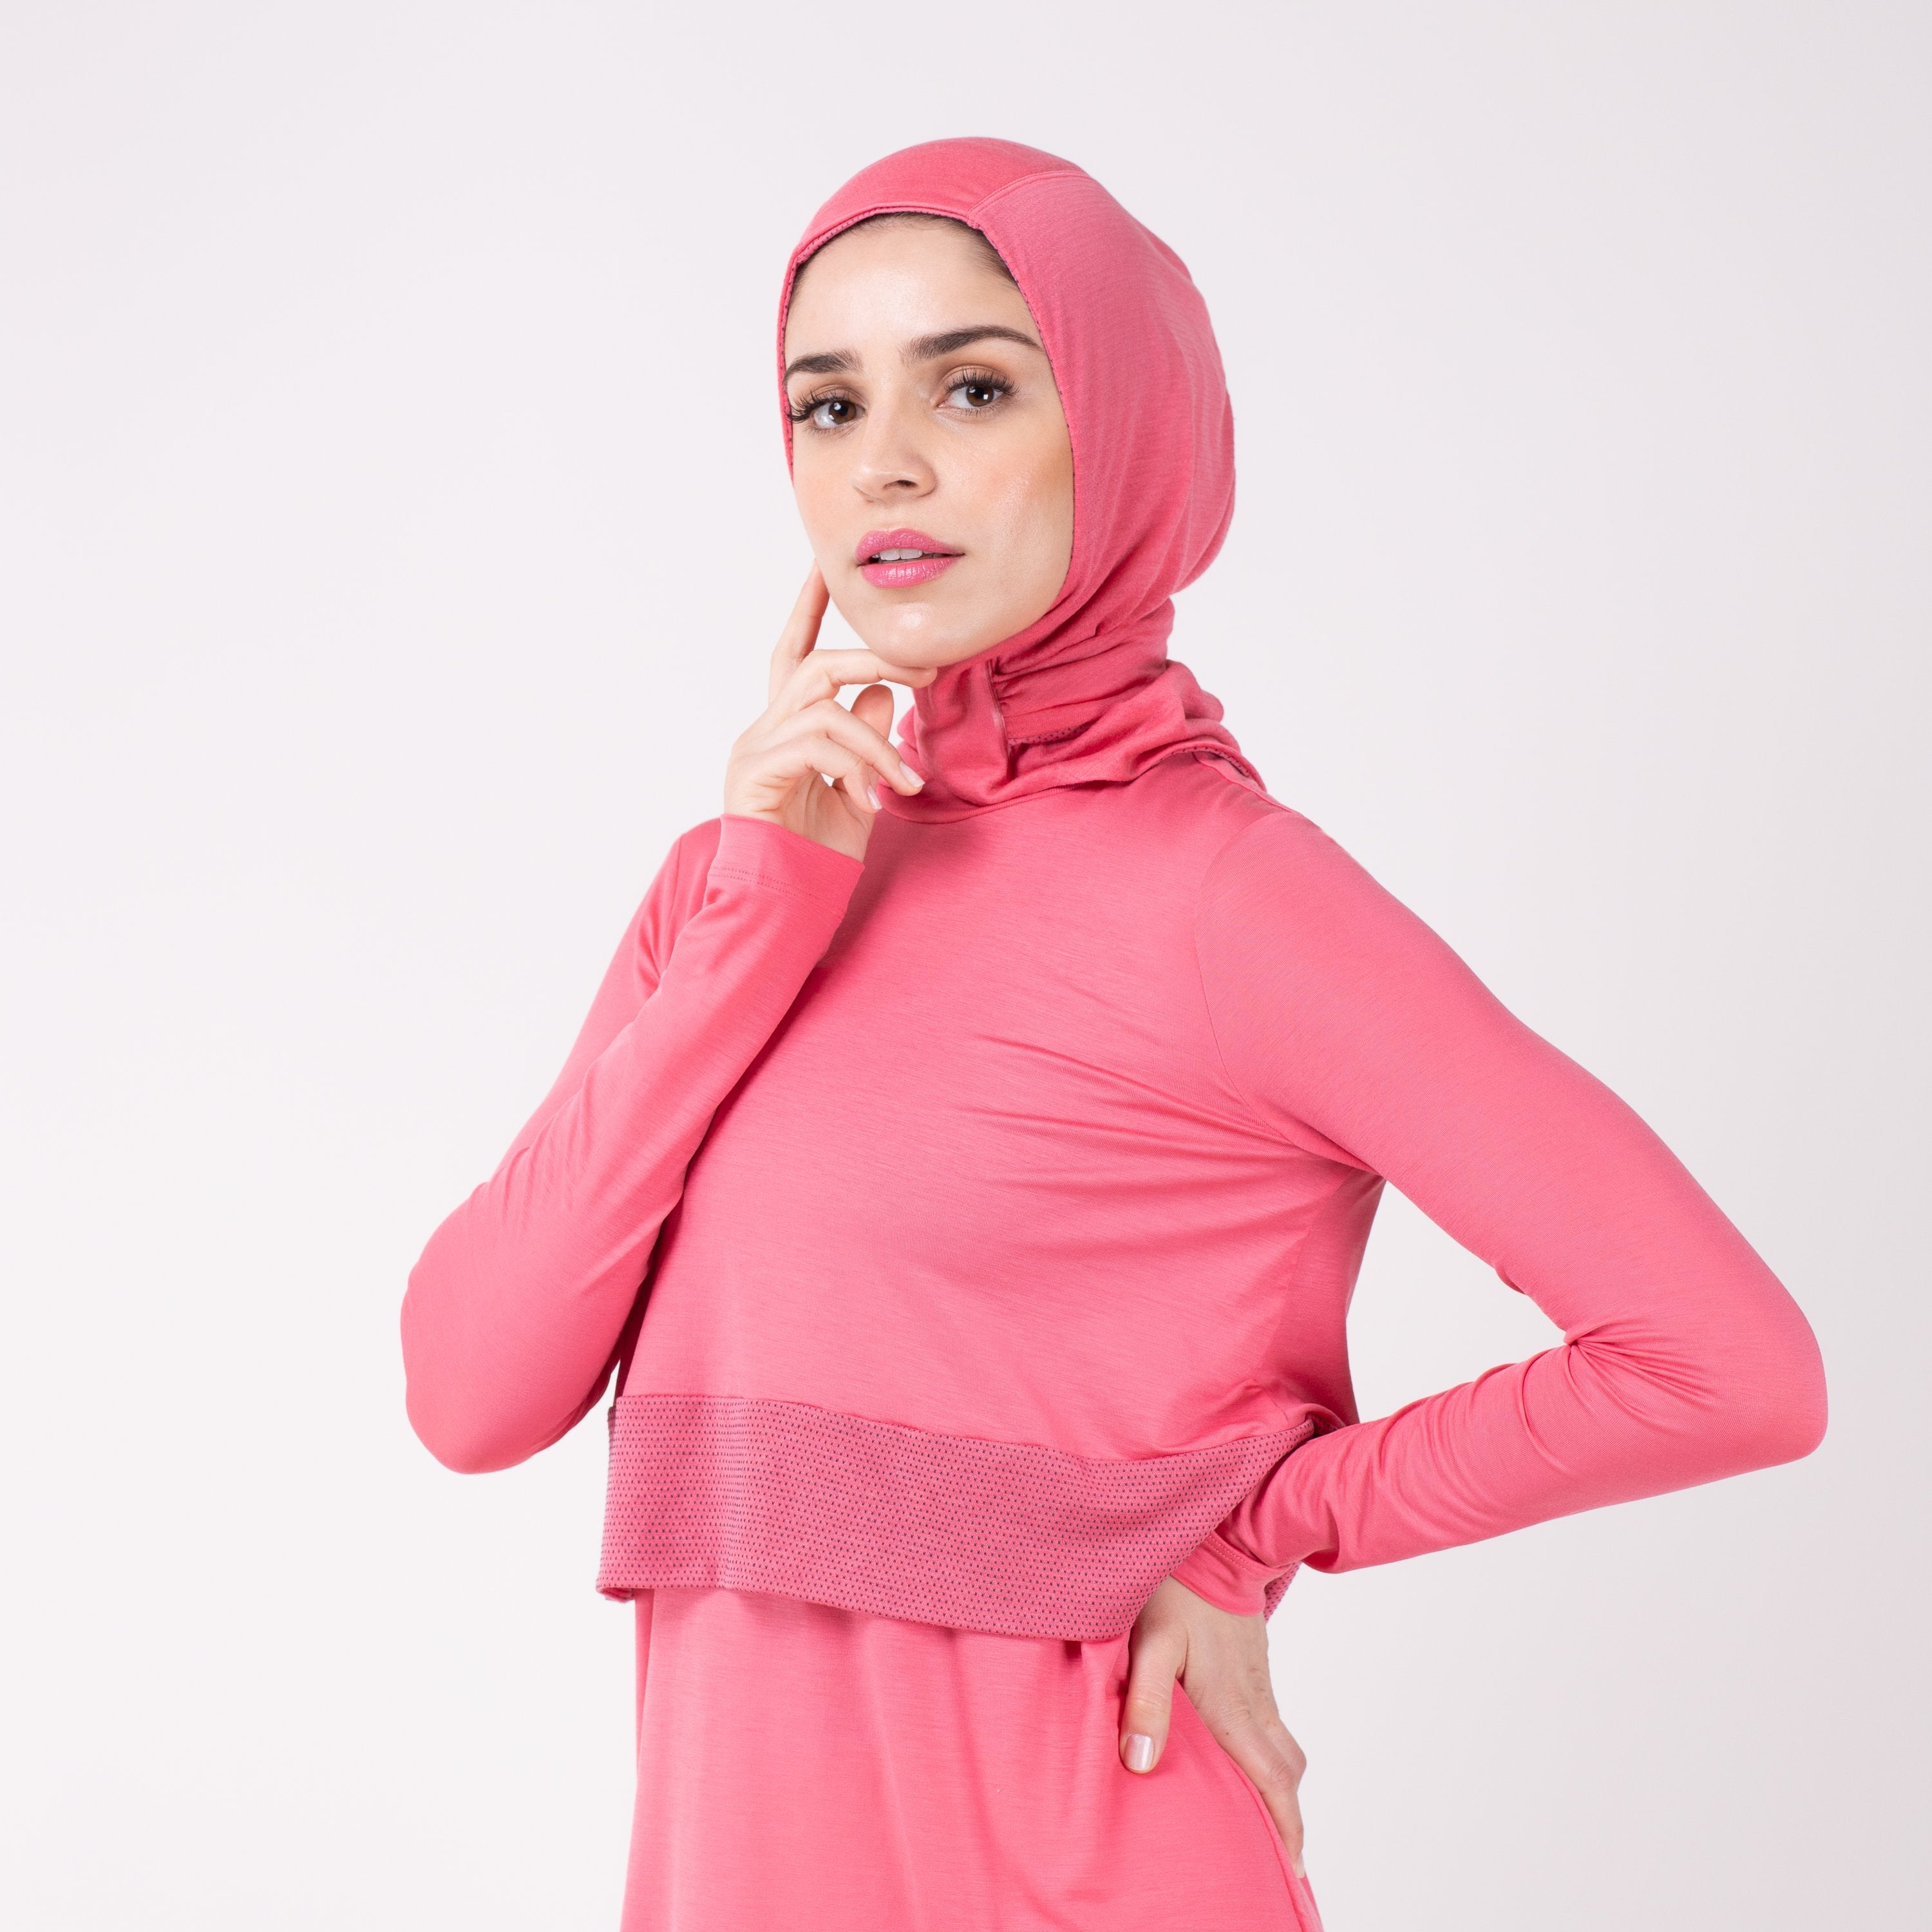 Woman facing left in a pink shirt with a matching pink HAWA hijab, touching her face with her right and and her left hand on her hip.